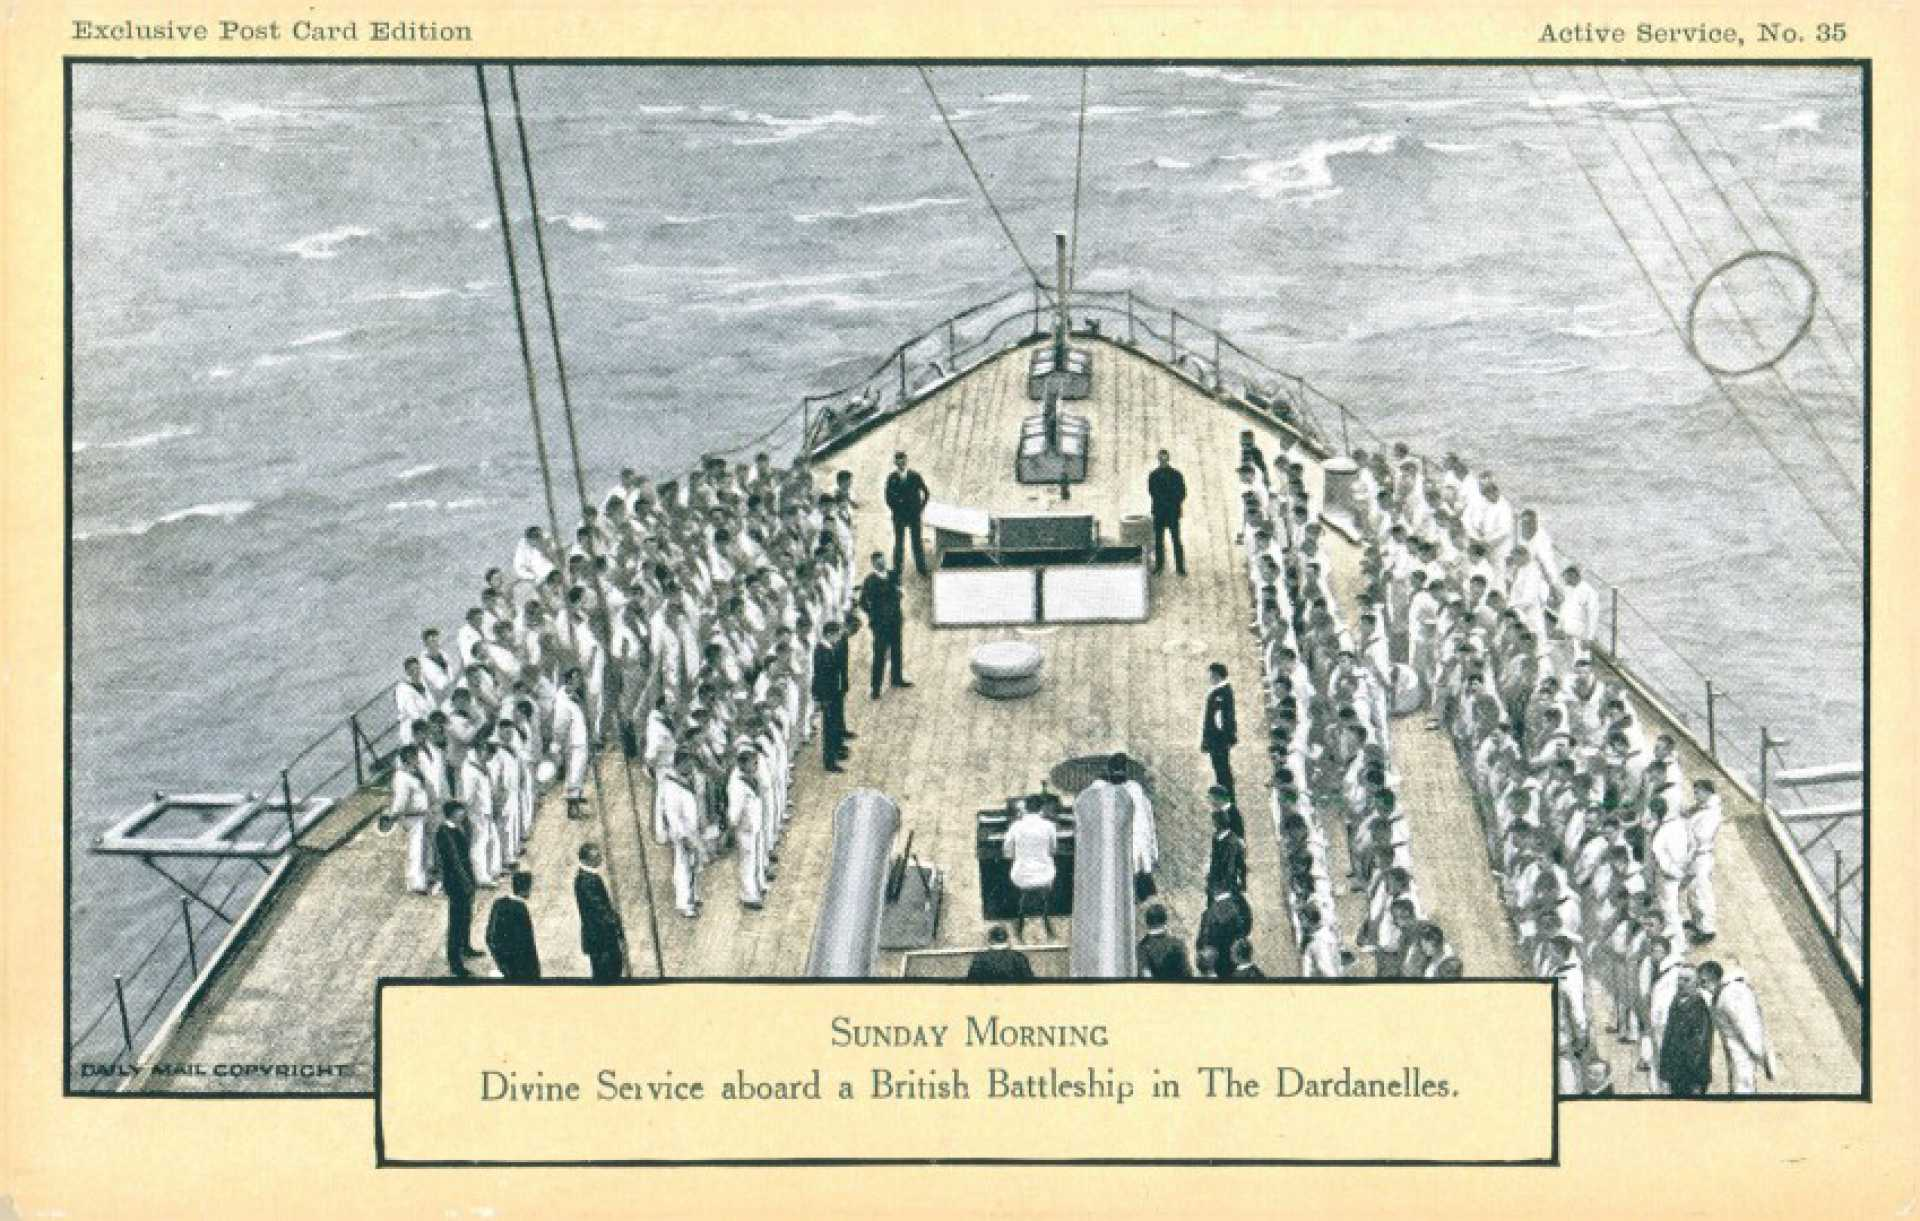 Sunday morning. Divine sevice abroad a British battleship in the Dardanelles